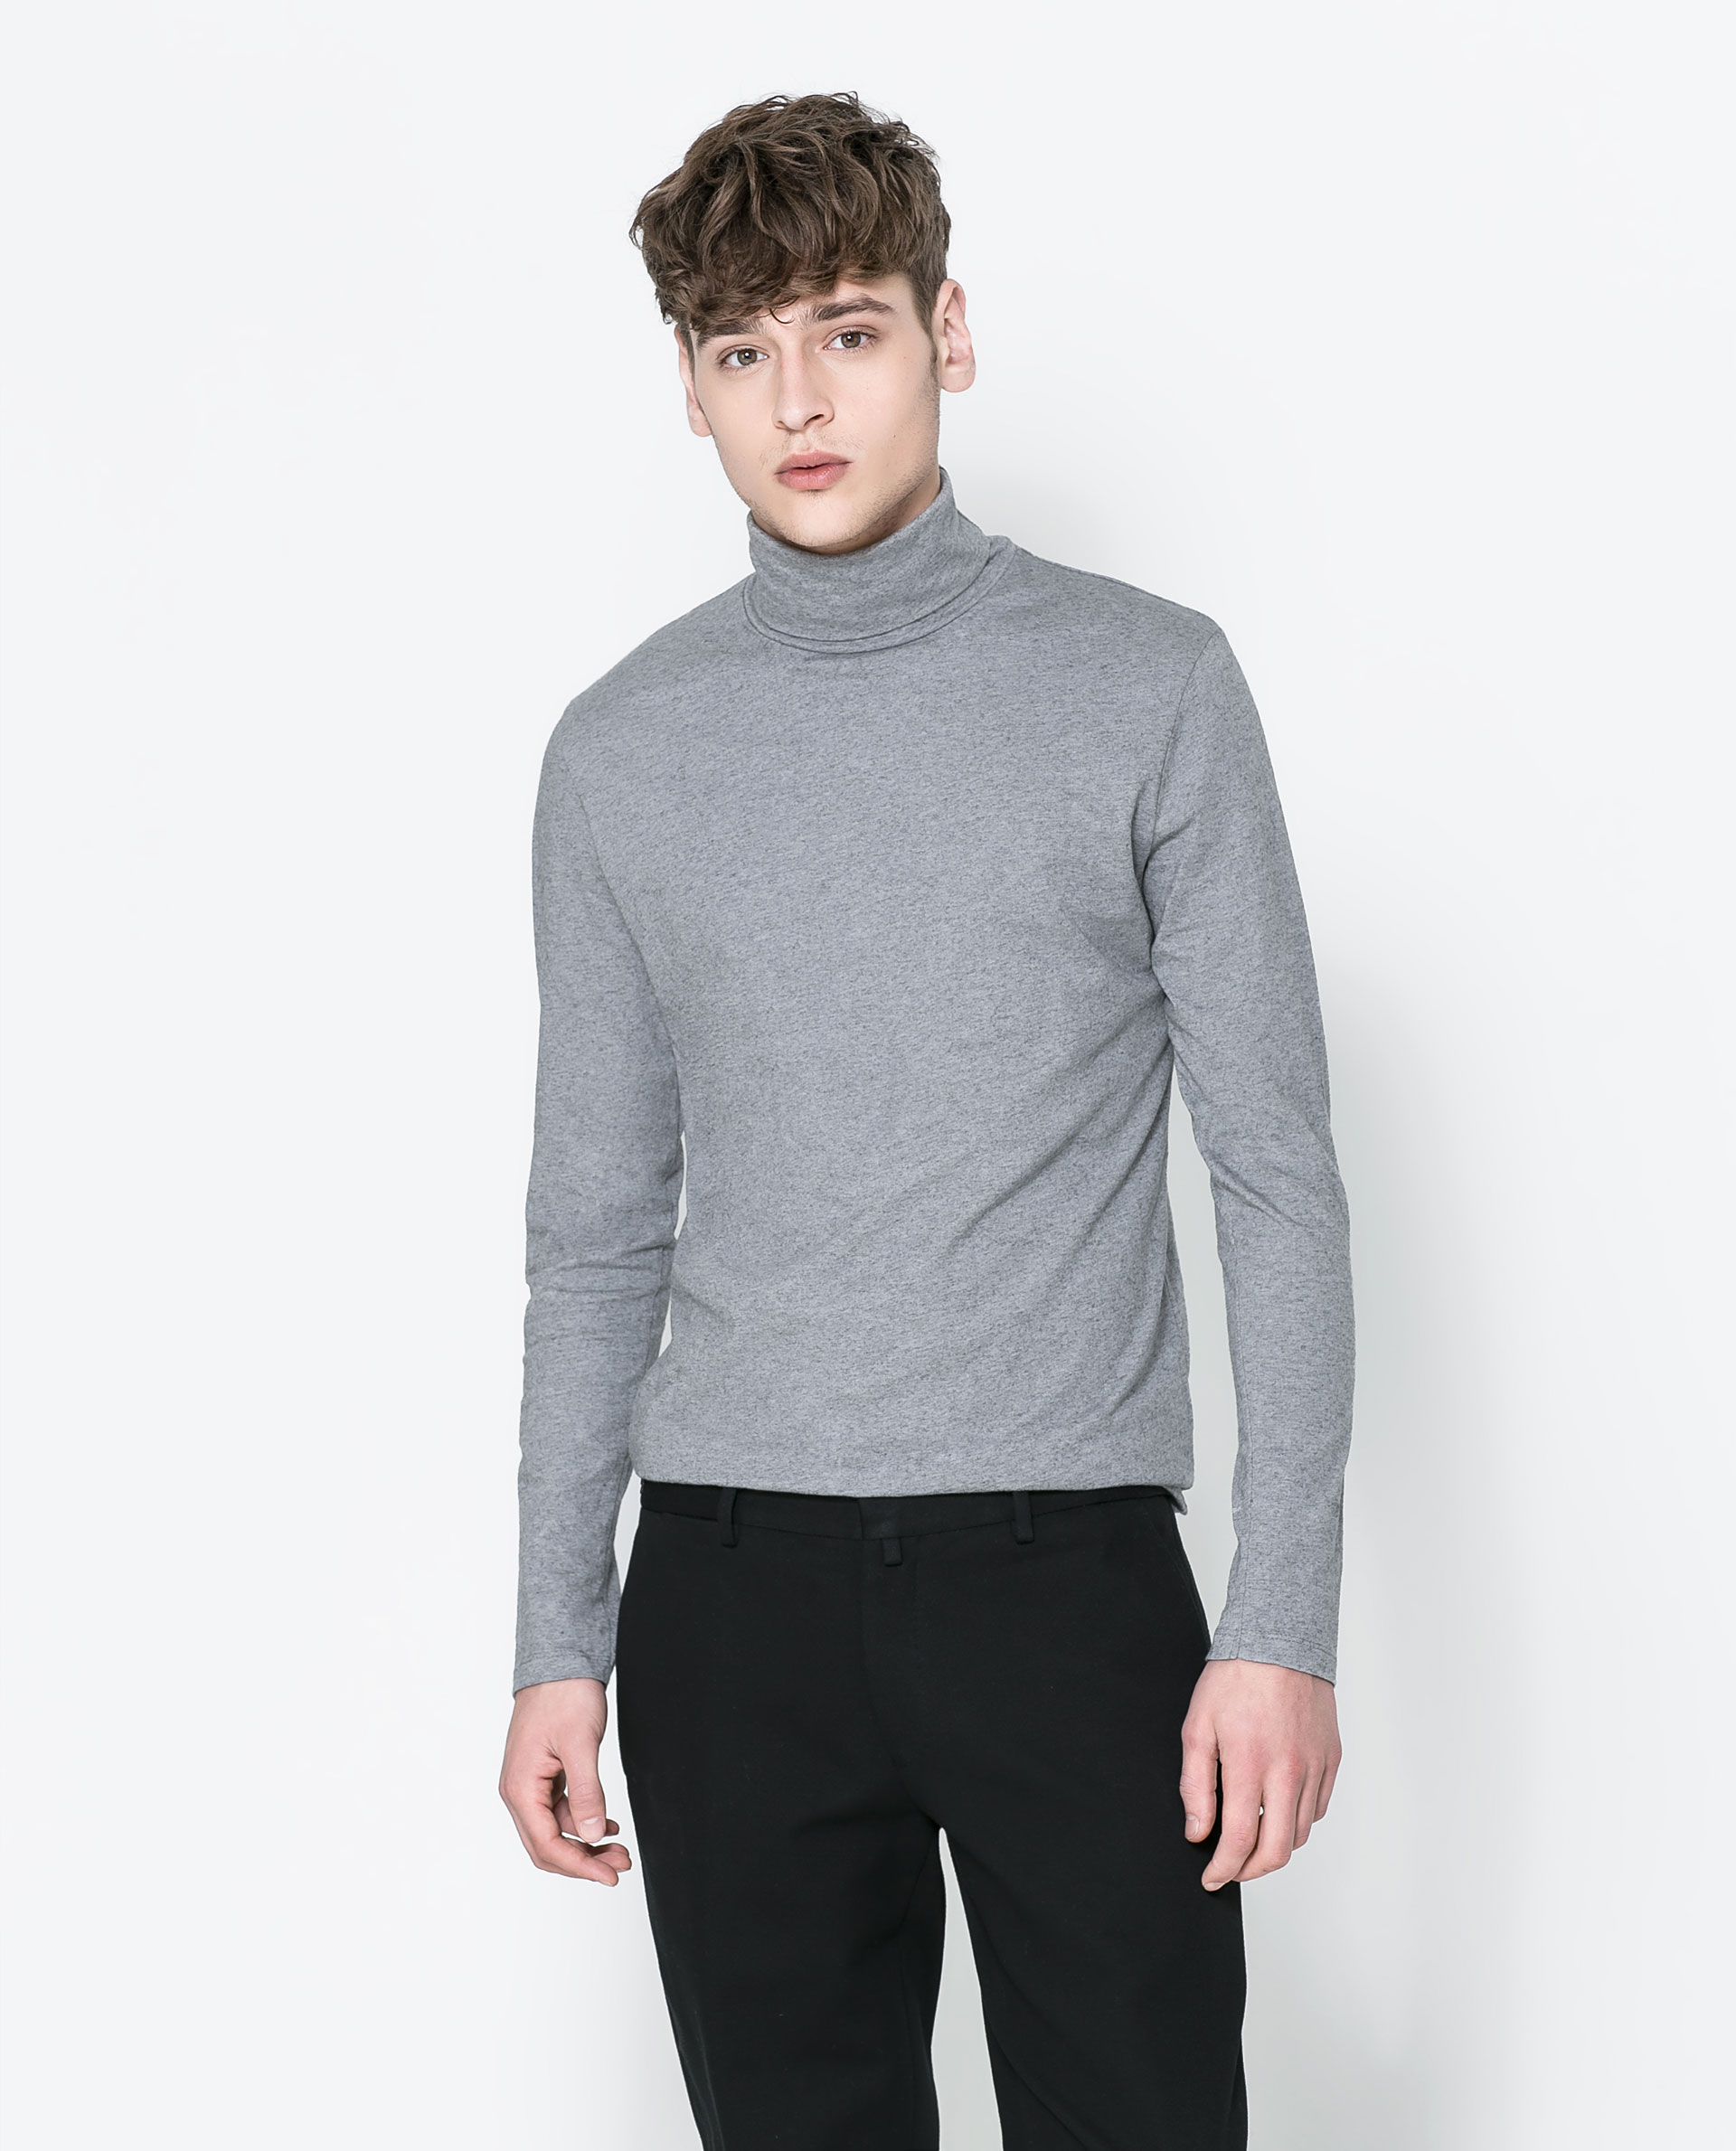 Mens Turtleneck Shirt